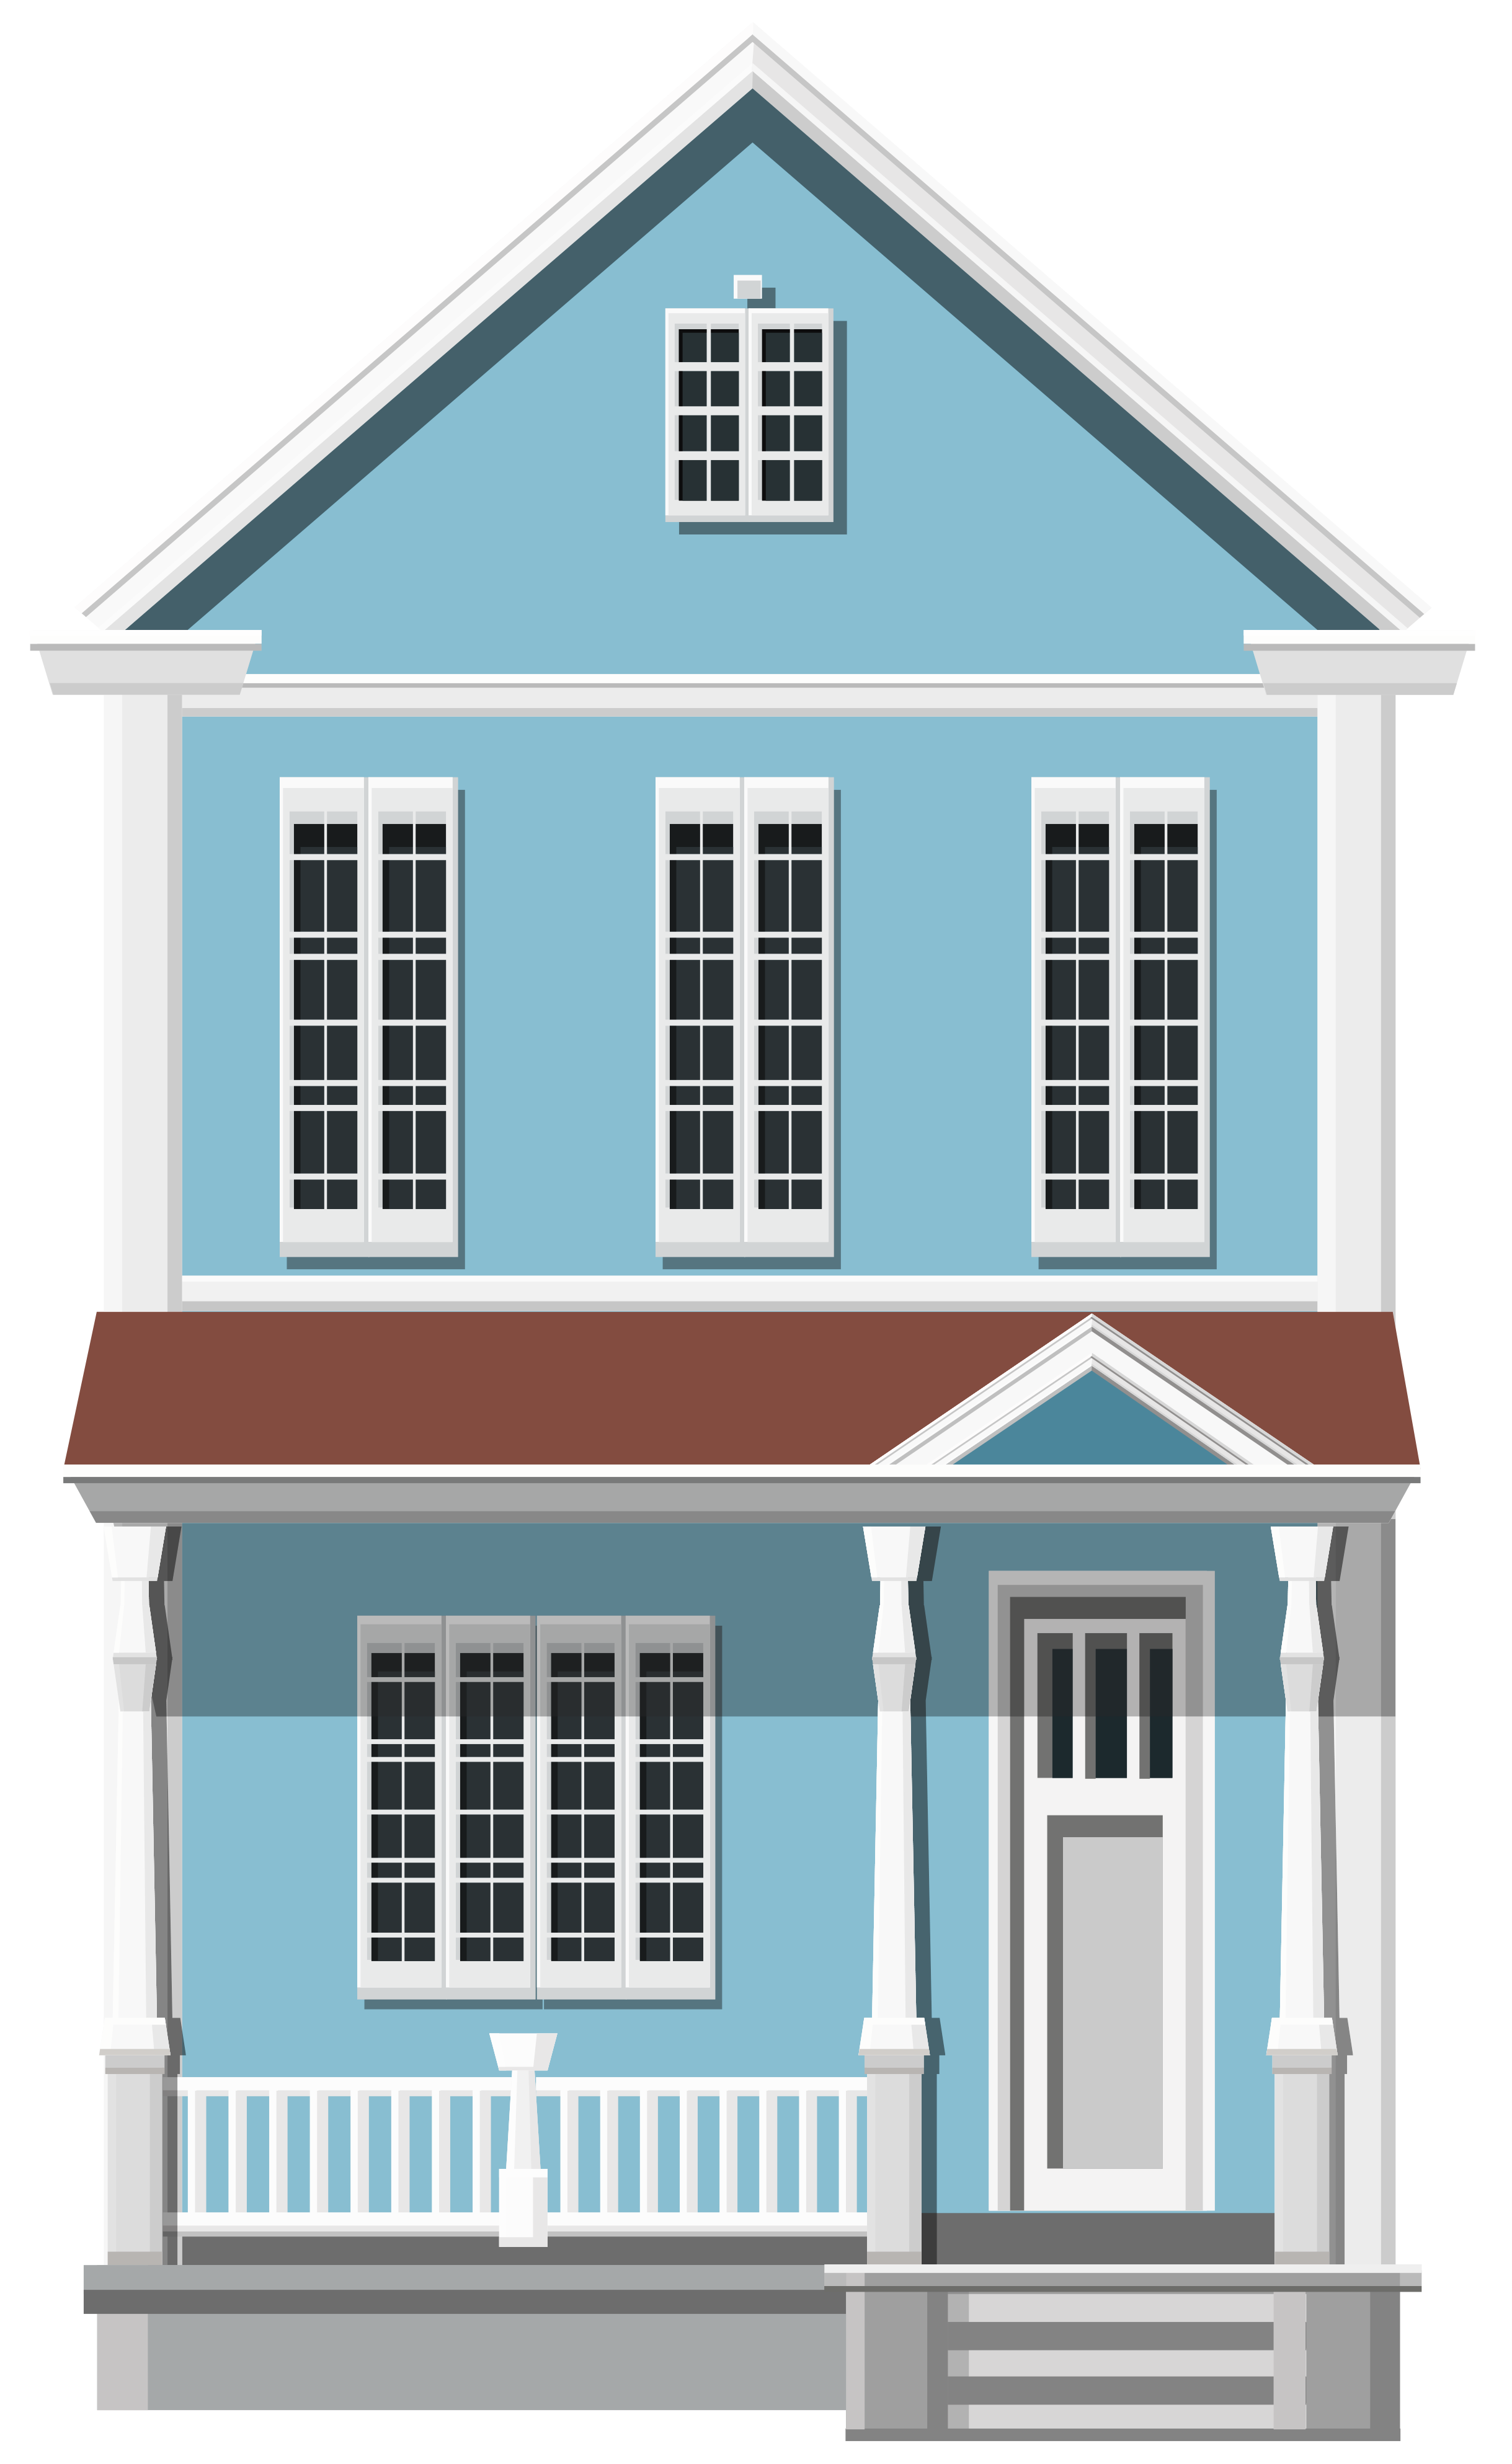 Blue house clipart jpg royalty free library Blue House PNG Clip Art - Best WEB Clipart jpg royalty free library